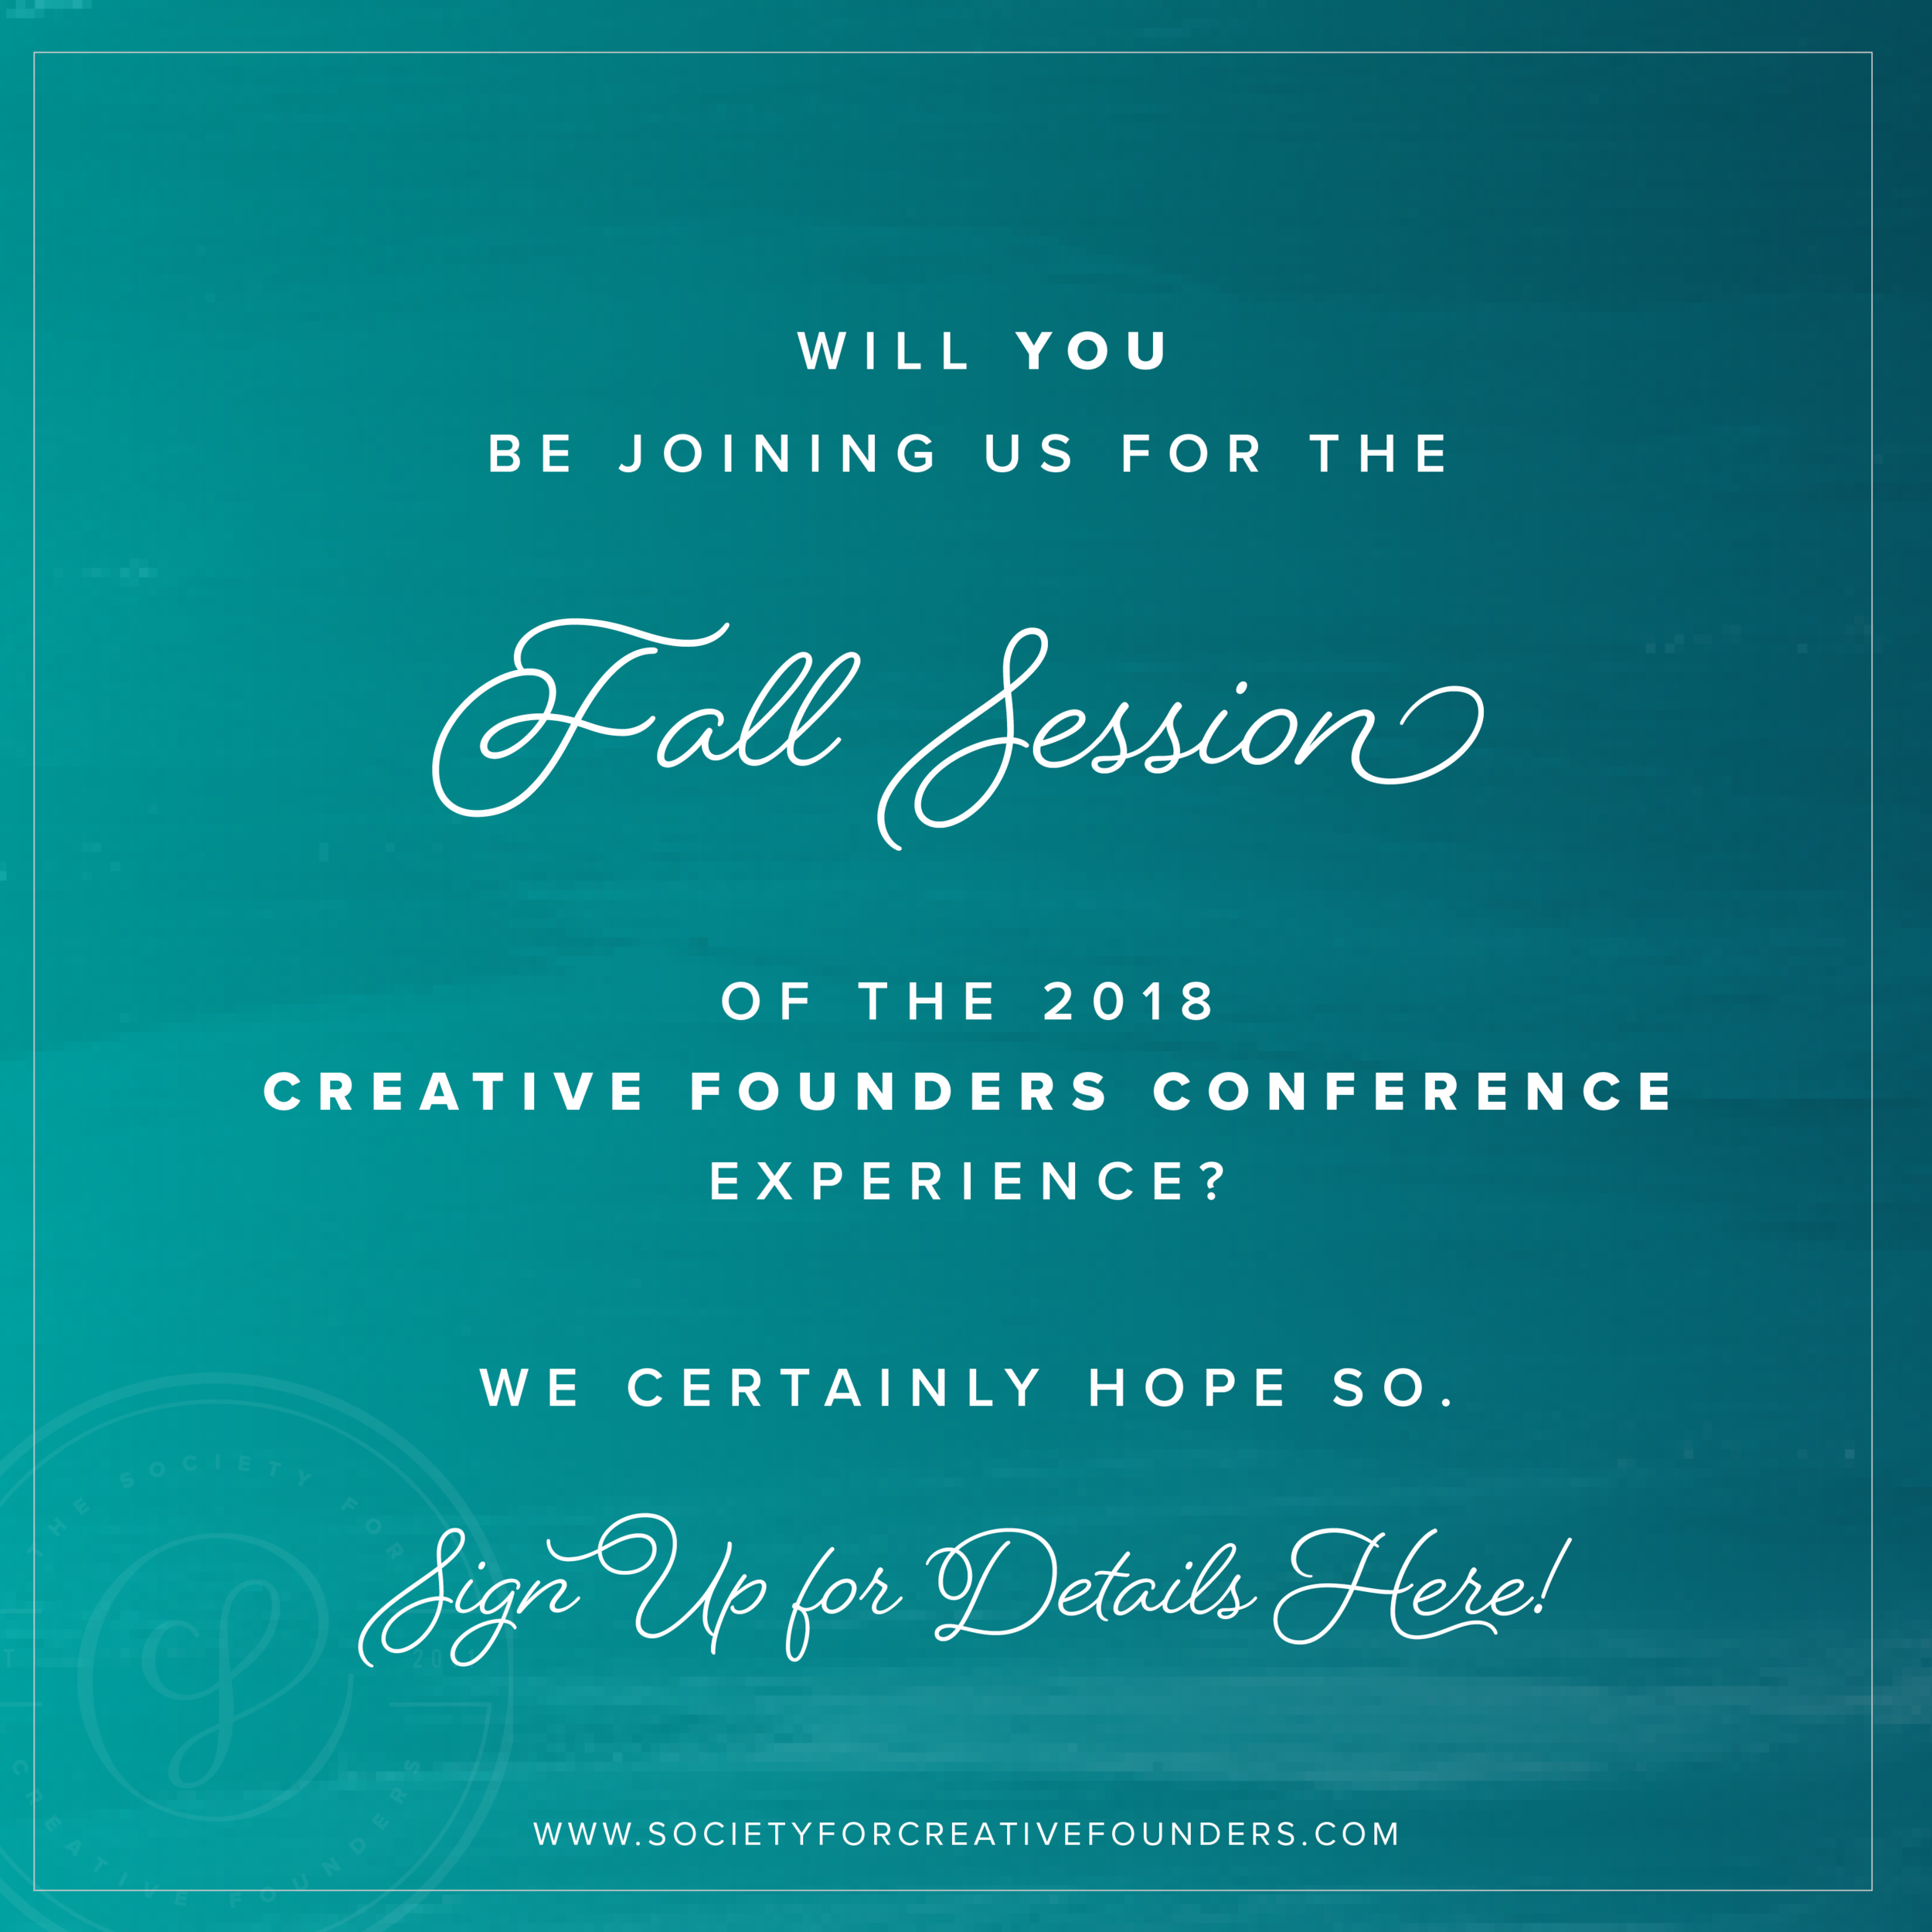 Creative Founders Conference - Fall 2018 Experience